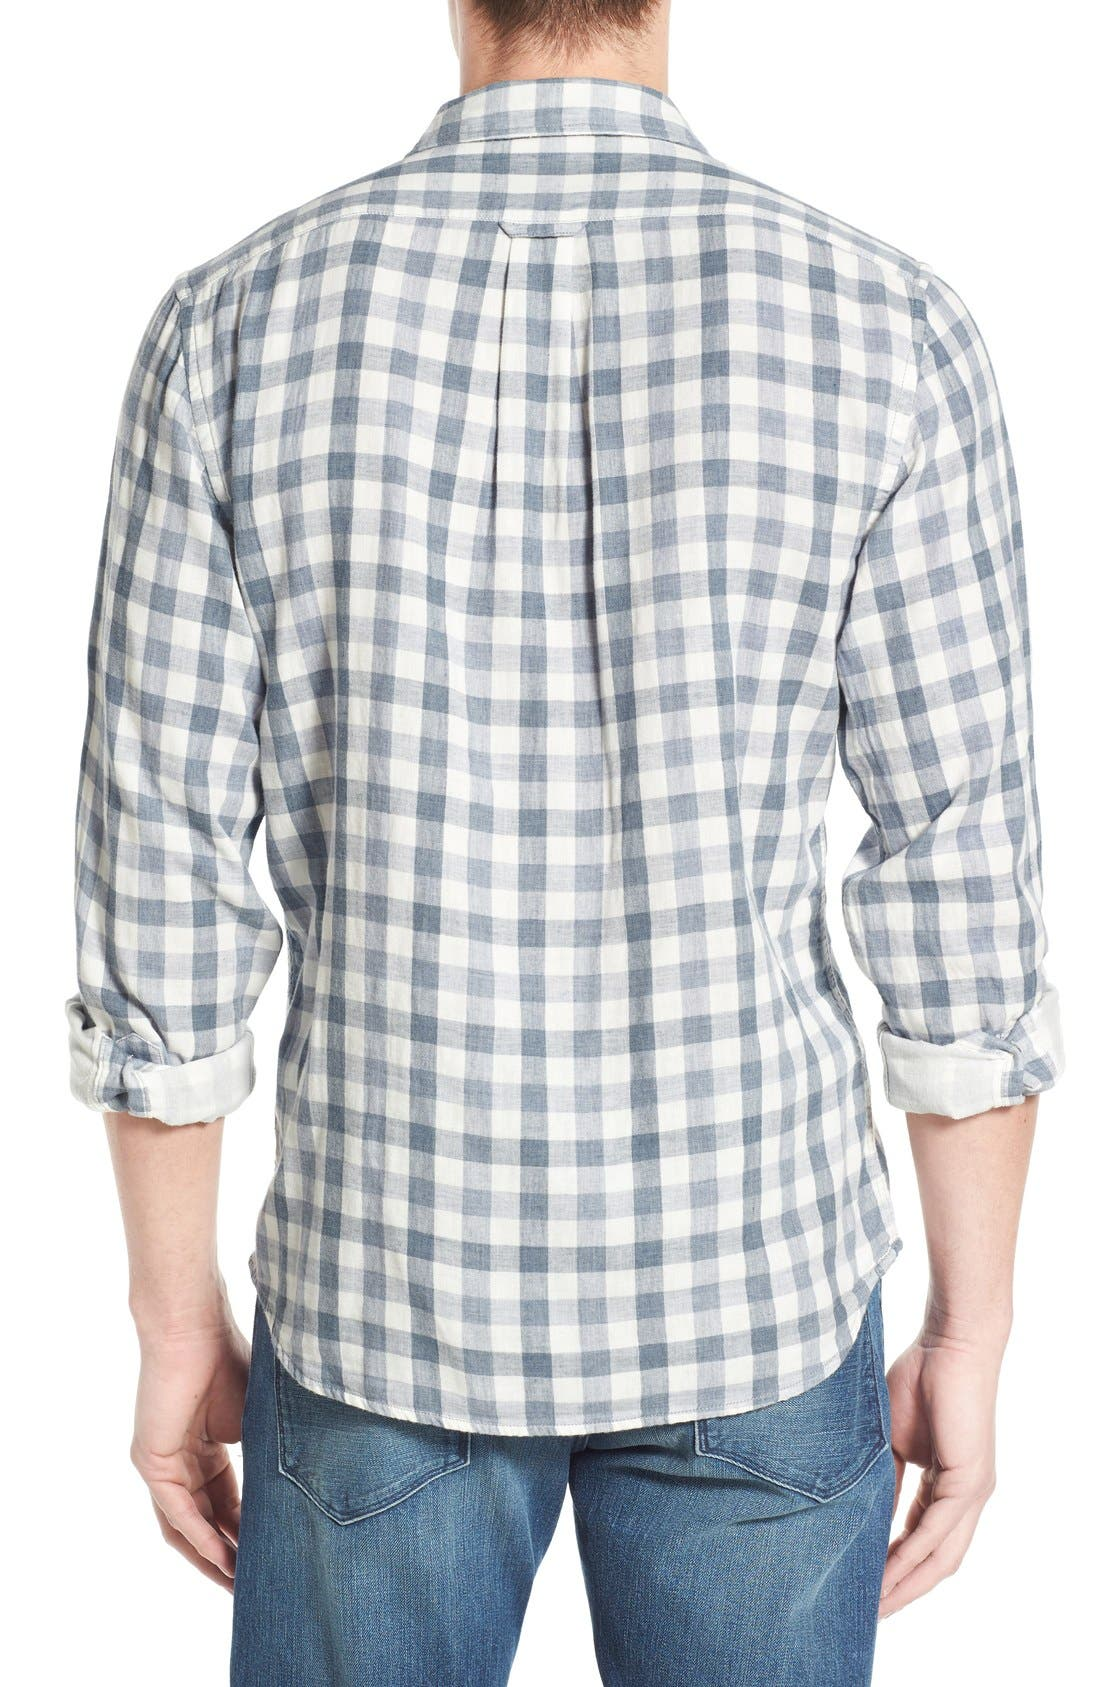 'Denby' Trim Fit Double Woven Sport Shirt,                             Alternate thumbnail 2, color,                             Heather Blue/ Cream Gingham